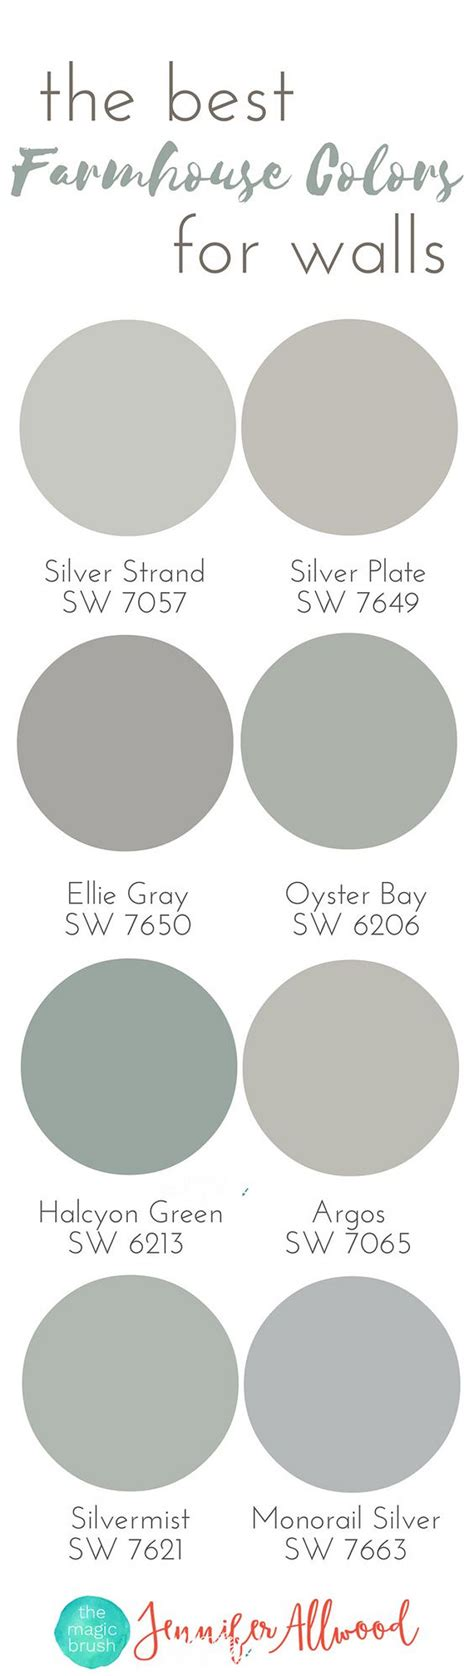 top paint colors for 2017 top paint colors for 2017 ideas popular interior paint